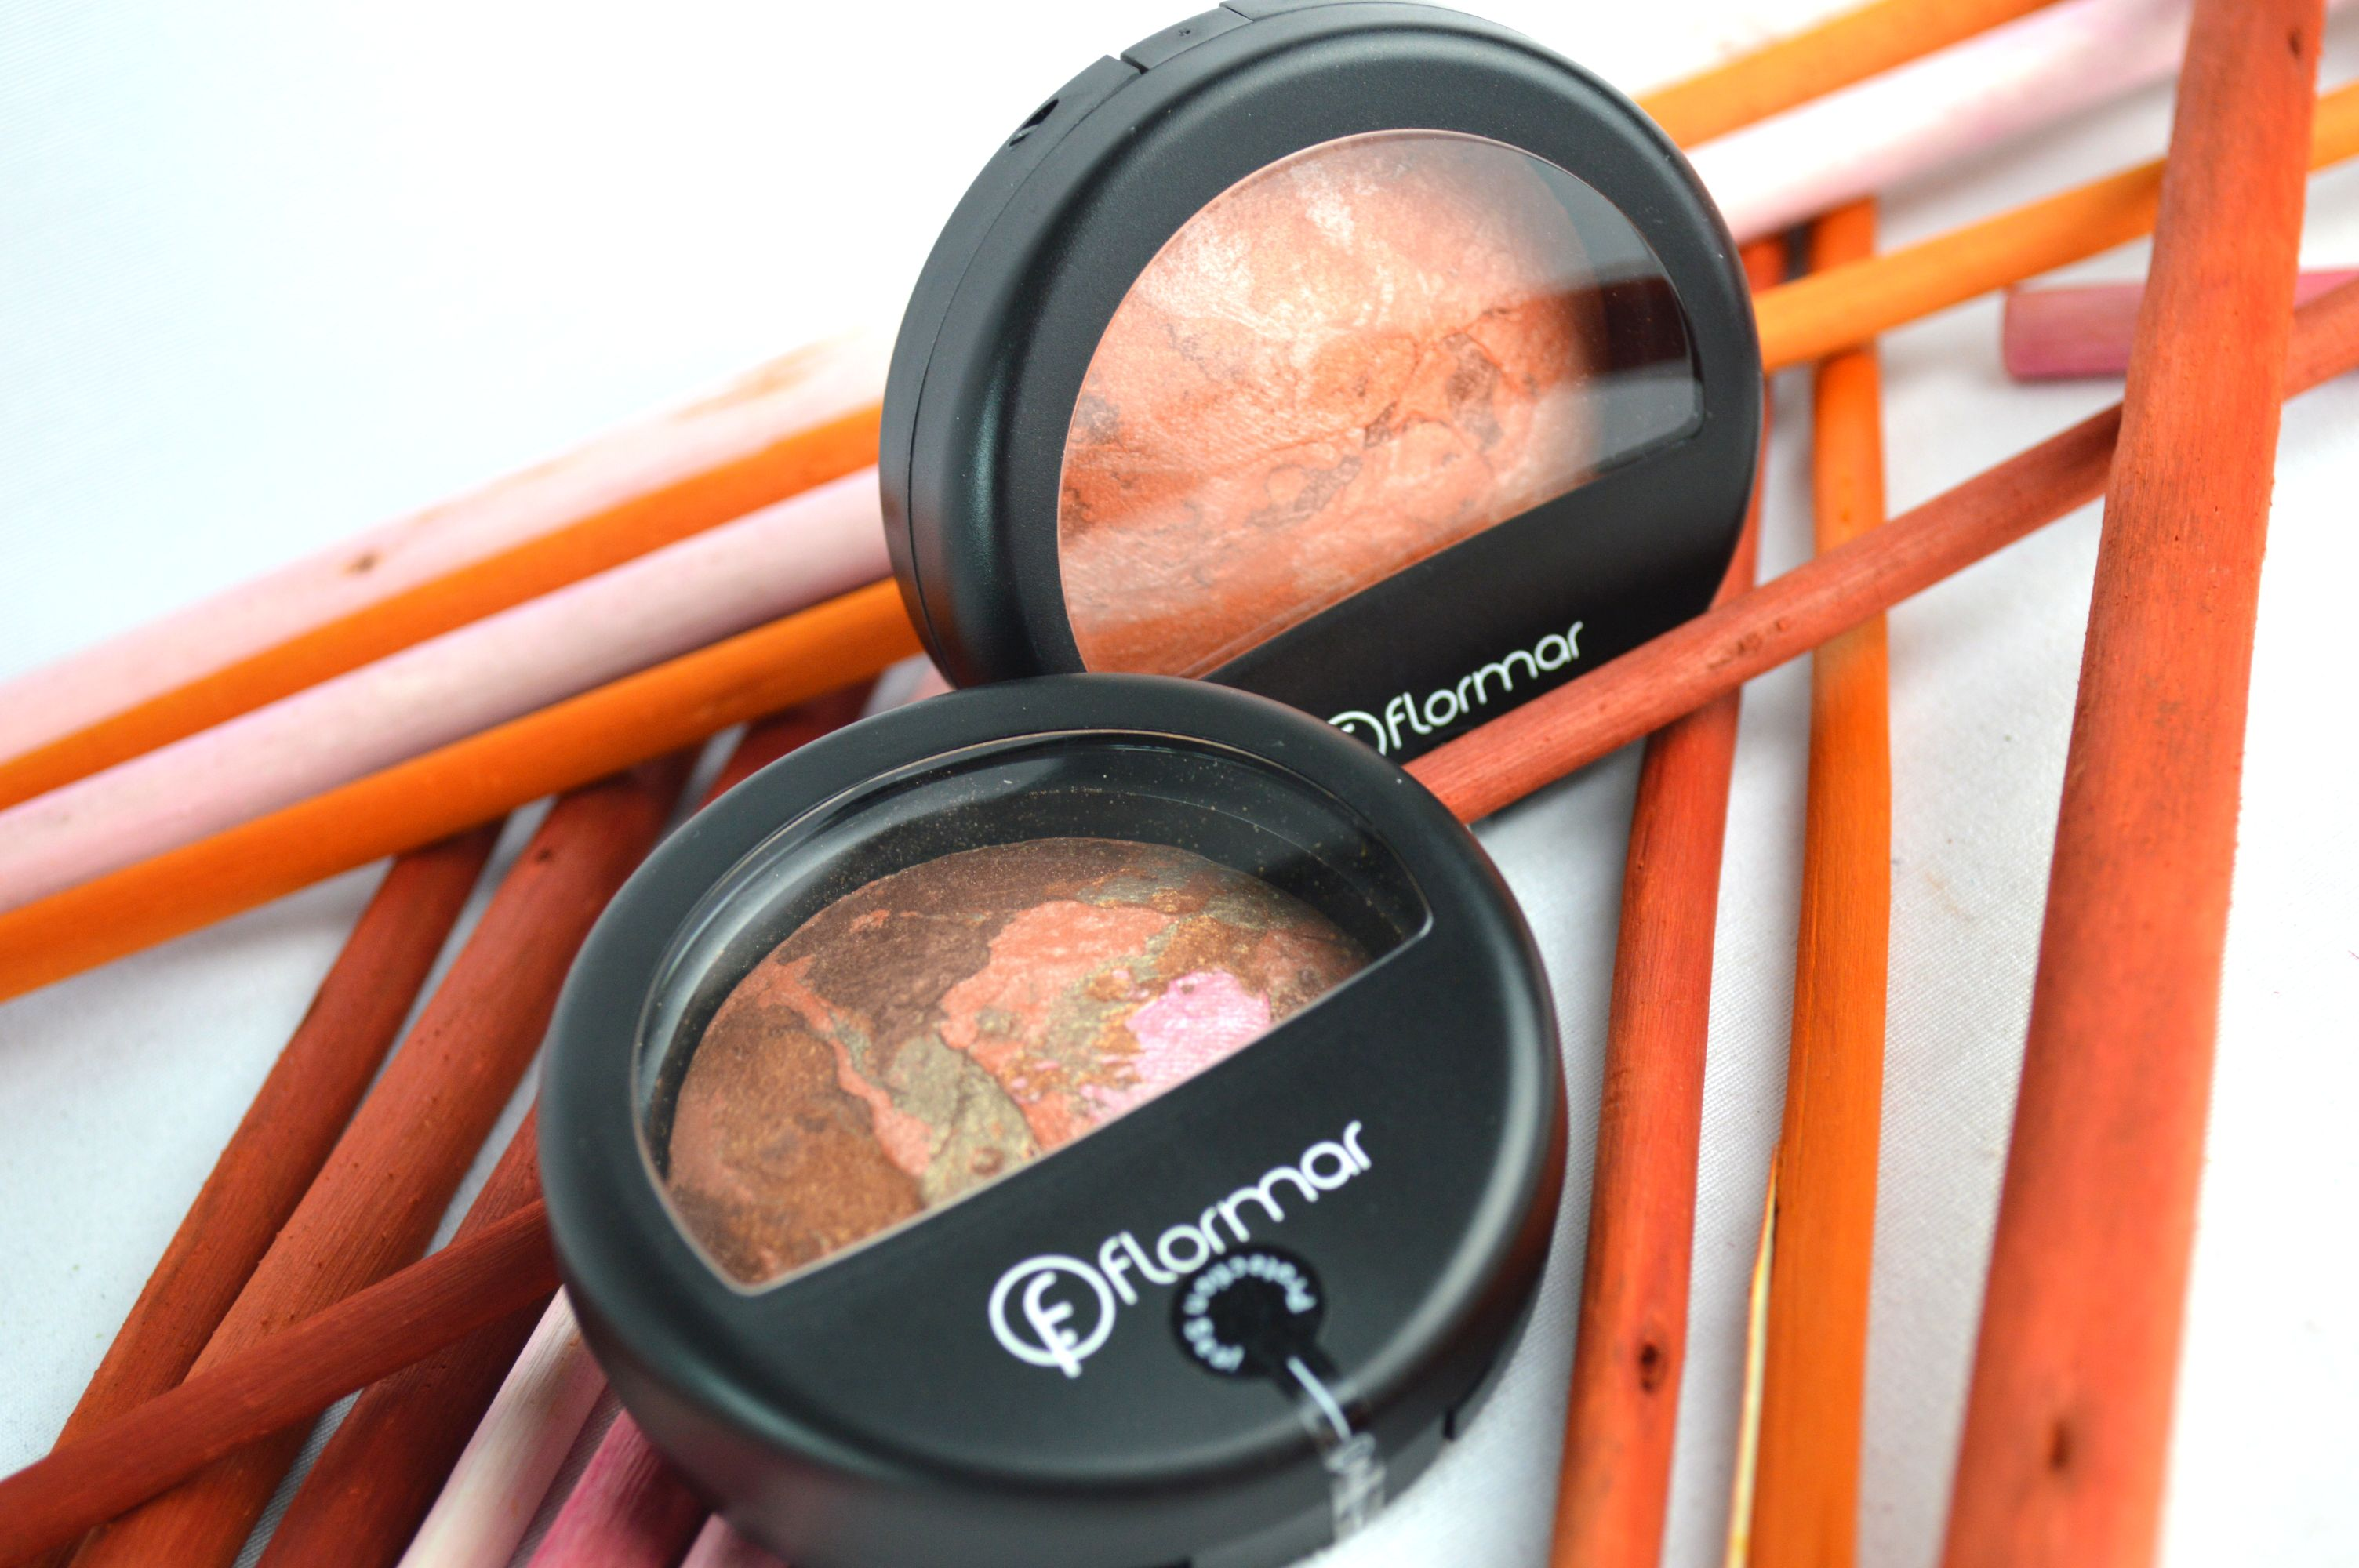 Flormar Blush und Powder